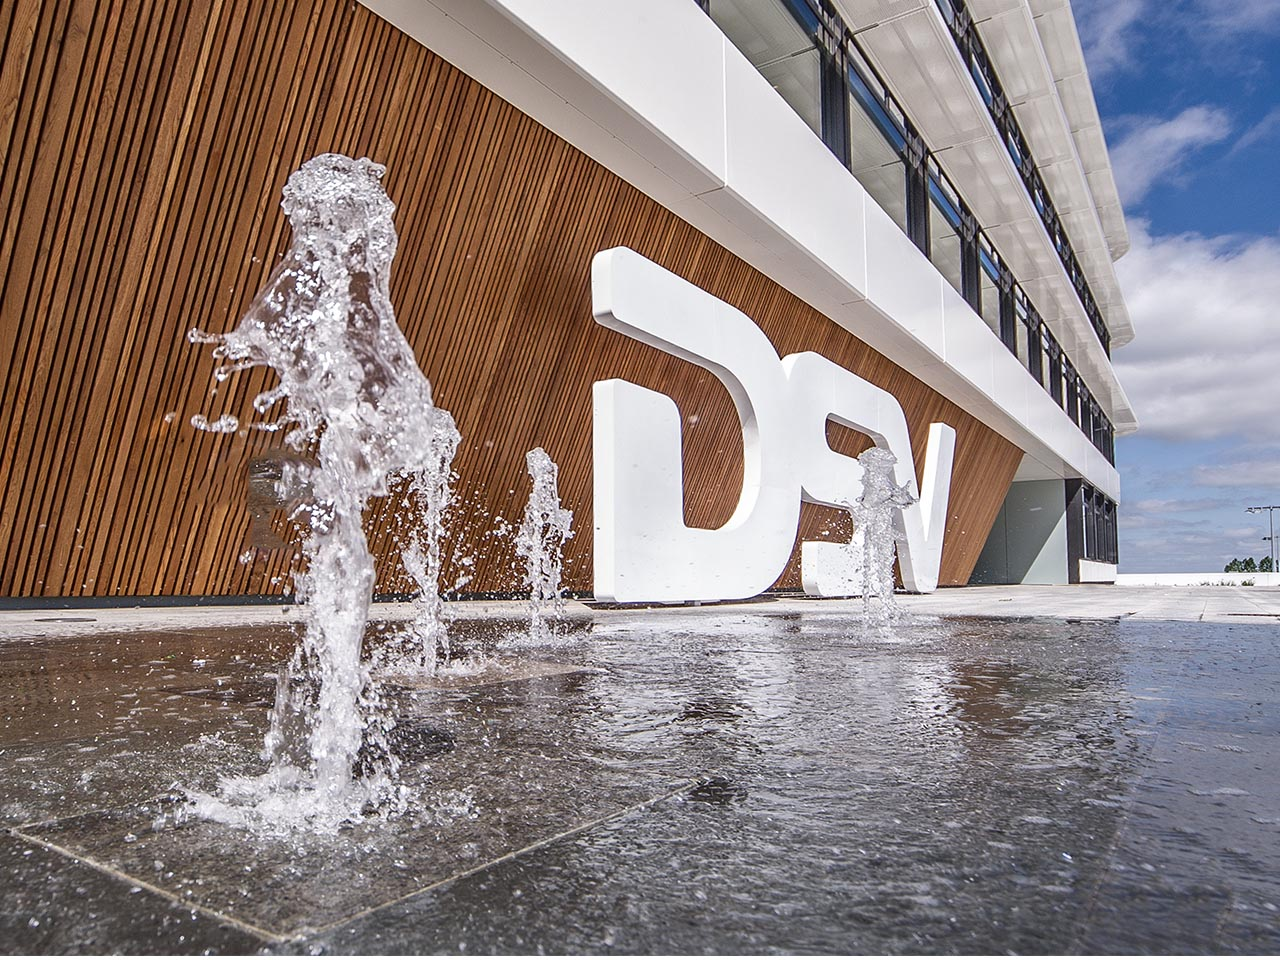 Meet DSV management and our Board of Directors